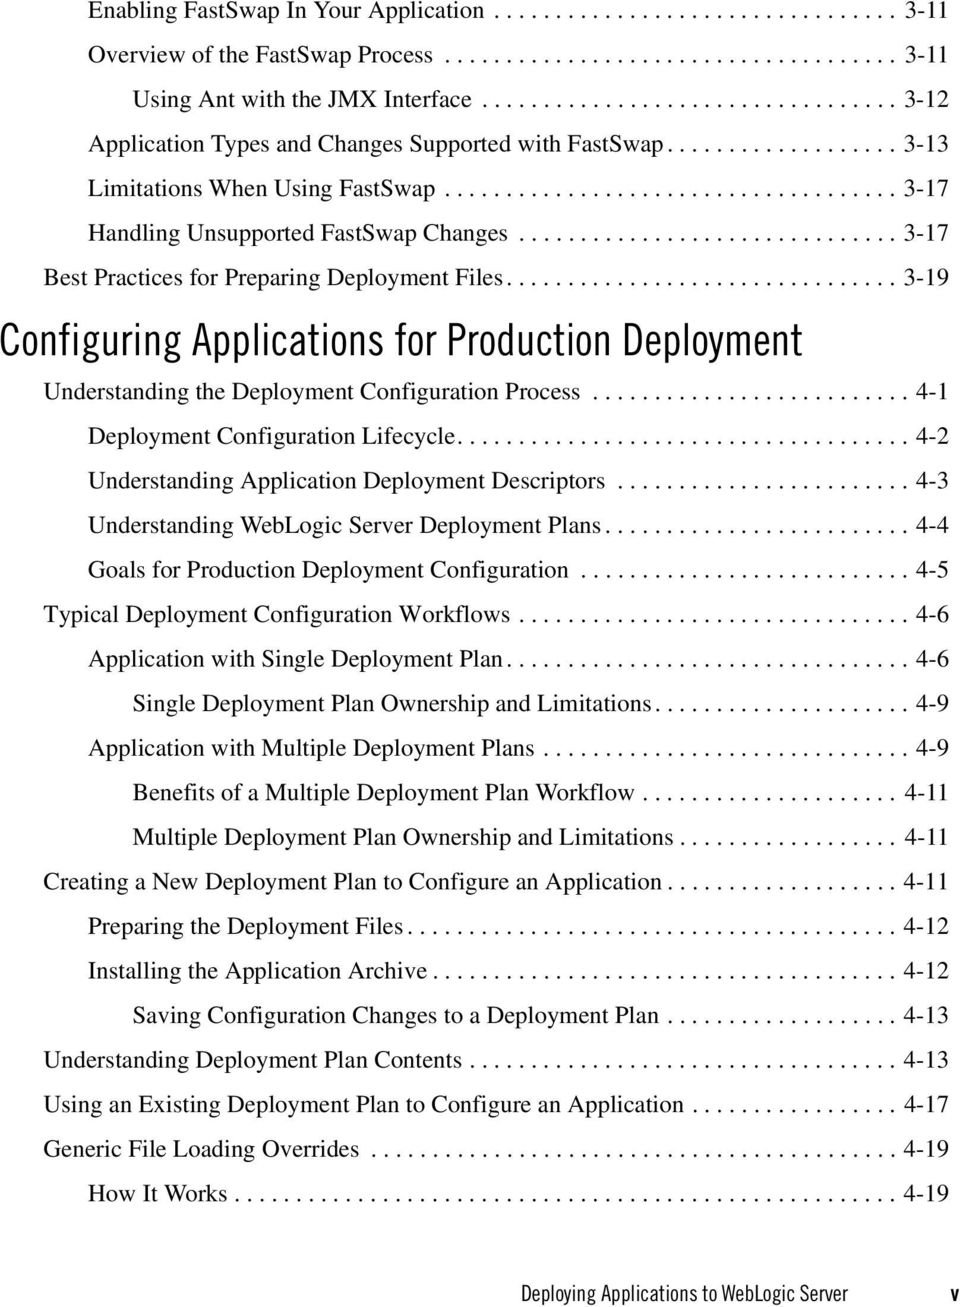 .............................. 3-17 Best Practices for Preparing Deployment Files................................ 3-19 Configuring Applications for Production Deployment Understanding the Deployment Configuration Process.